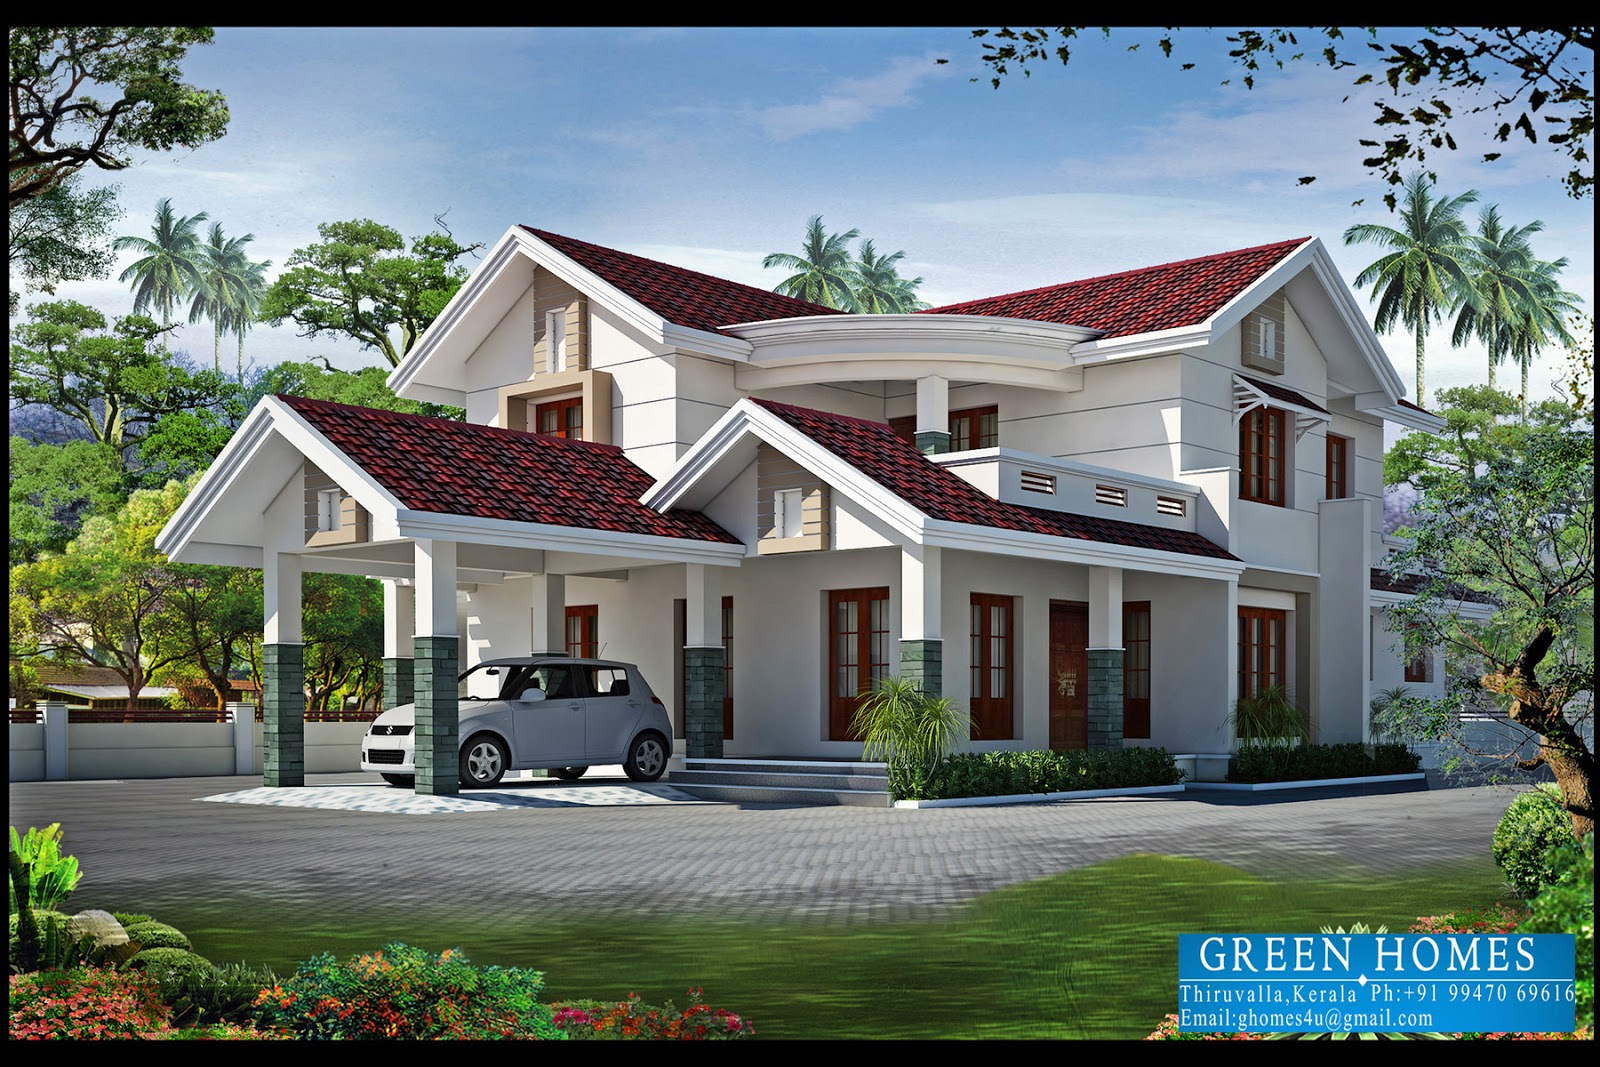 Kerala House Photos http://constructionthiruvalla.blogspot.com/2012/12/4bhk-kerala-home-design-2550-sqfeet.html